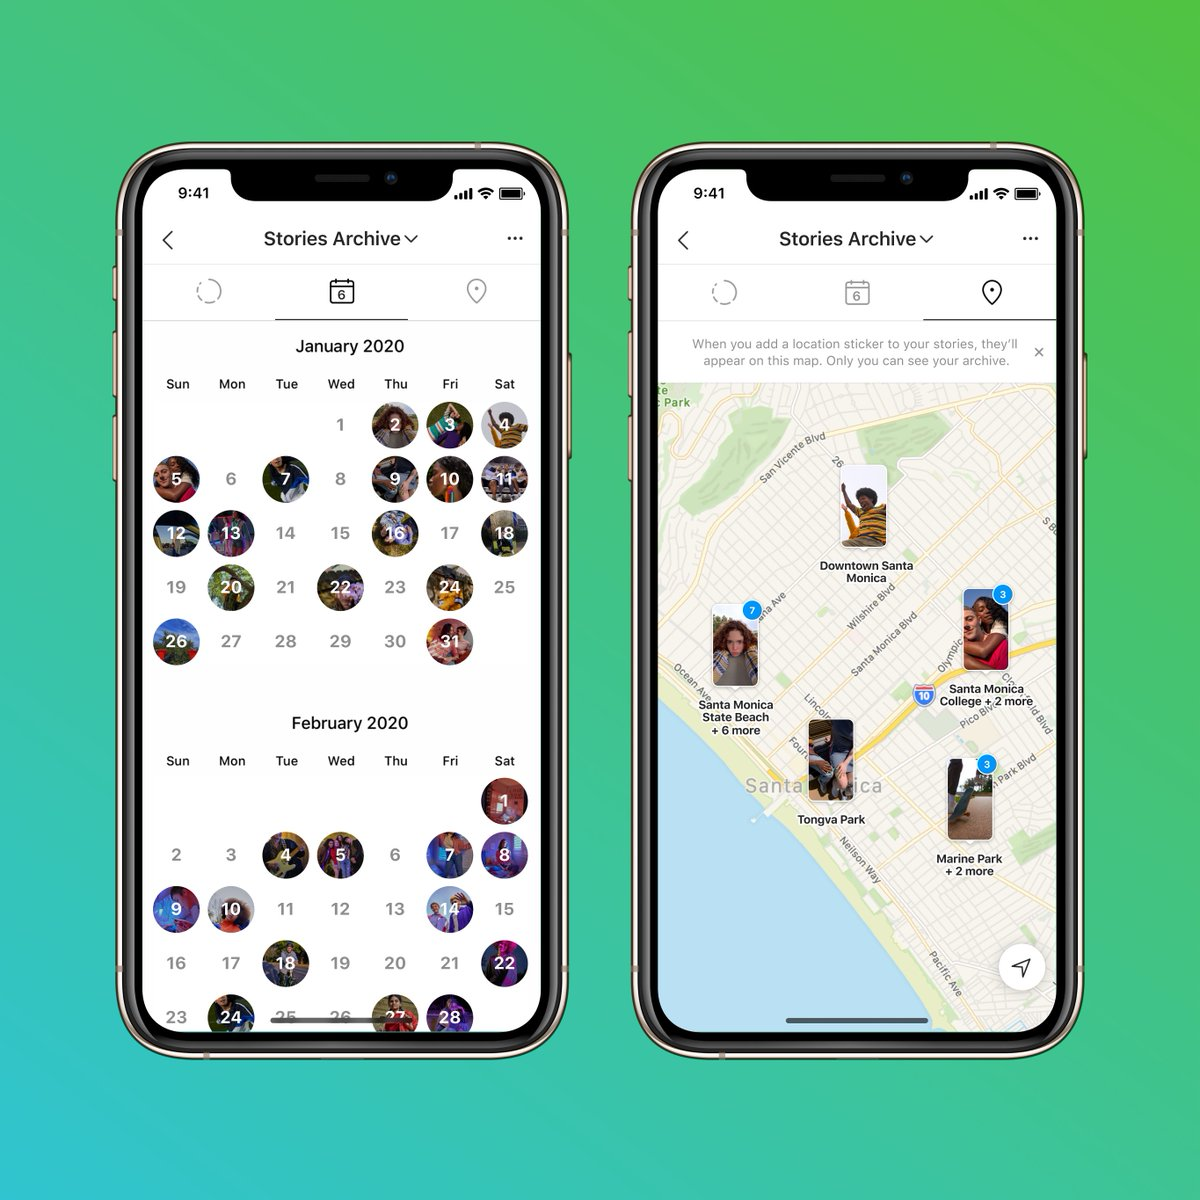 Pro tip 📣  Go to your stories archive for a map and calendar of your stories from the last three years.   Share, download and save them to your highlights. 🎉